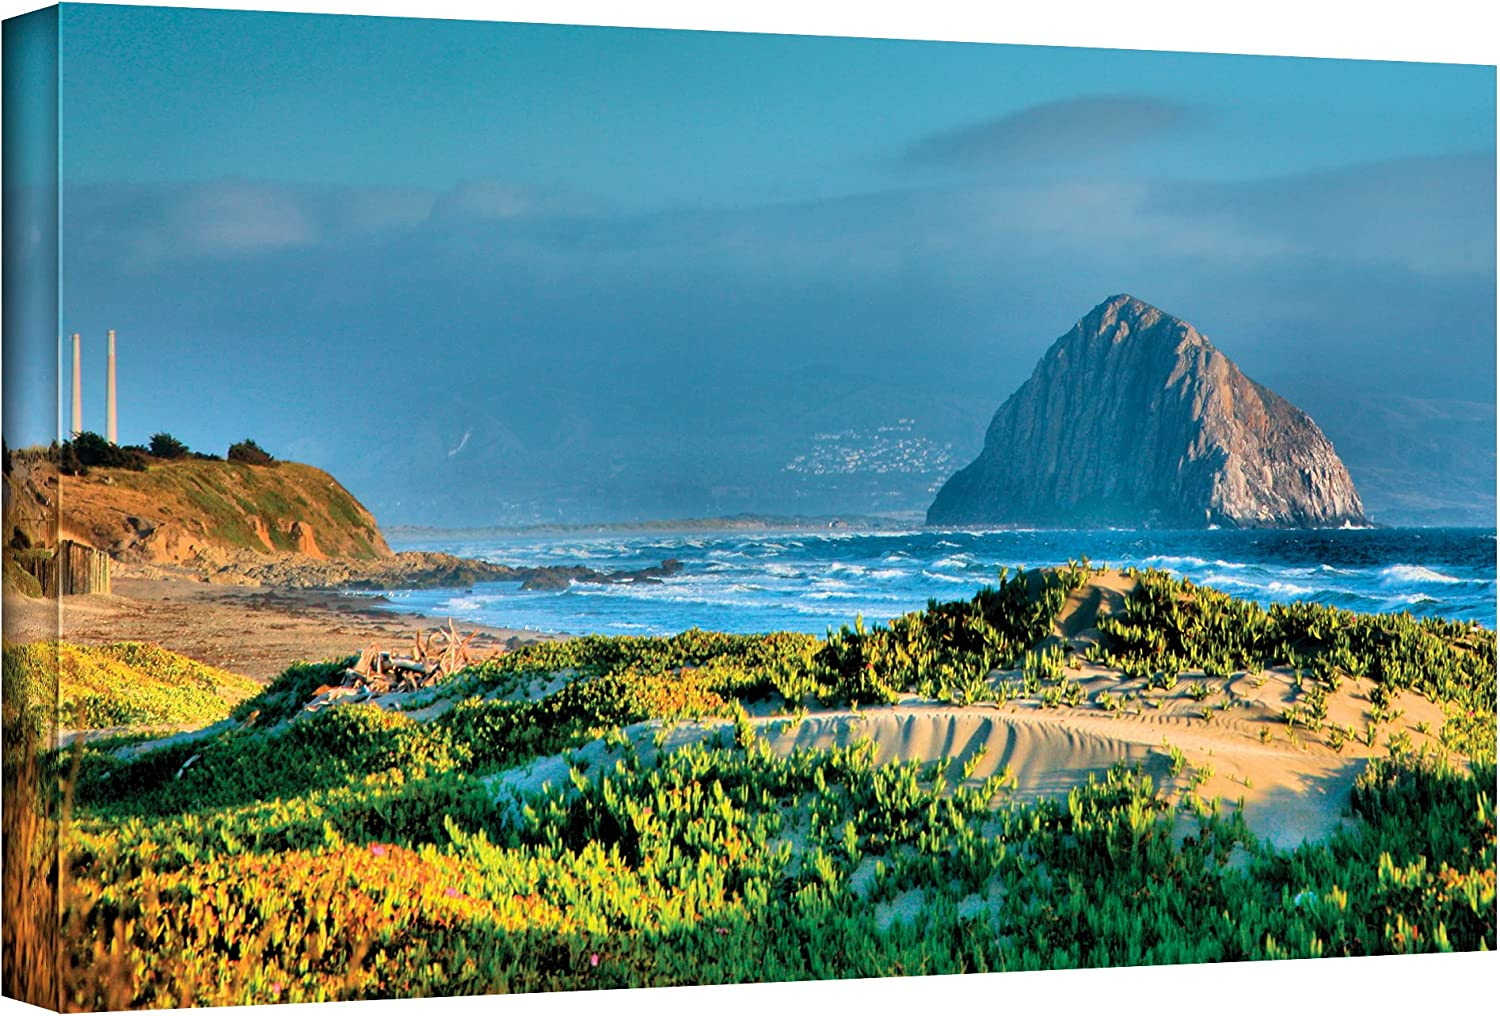 Art Wall 'Morro Rock and Beach' Gallery Wrapped Canvas Artwork by Steve Ainsworth, 12 by 24-Inch